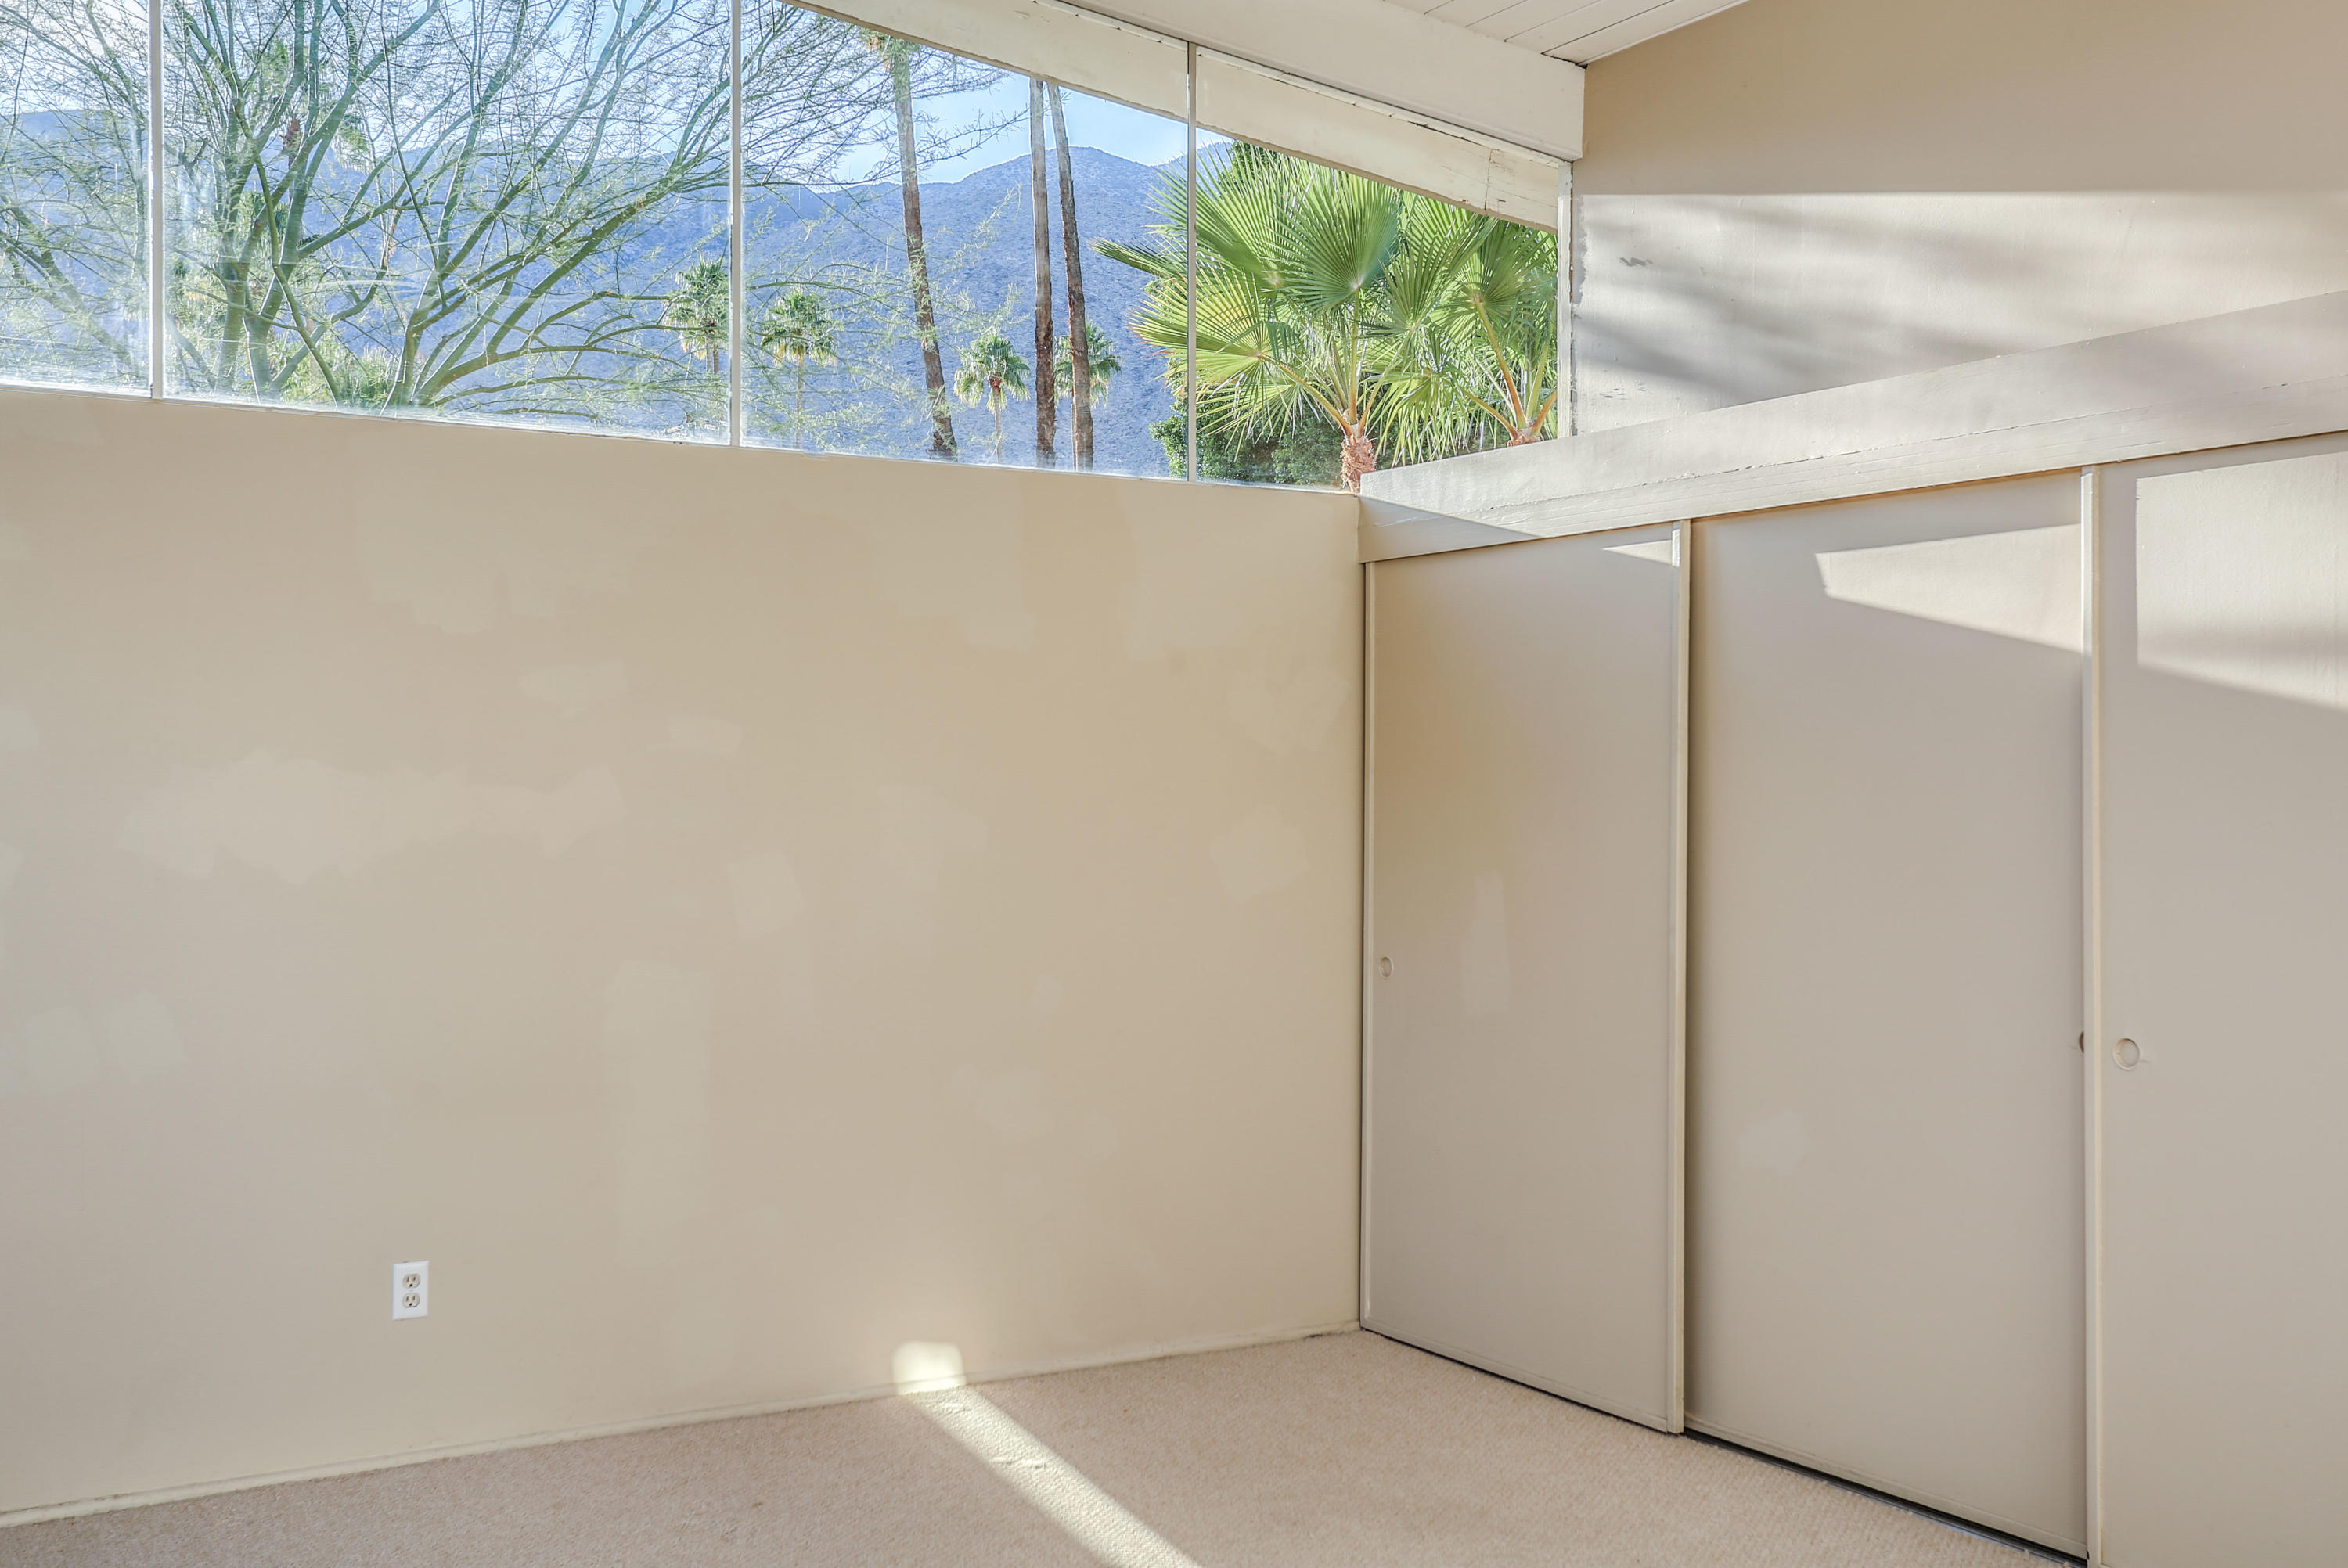 1992 S Navajo Drive, Palm Springs, California 92264, 4 Bedrooms Bedrooms, ,3 BathroomsBathrooms,Residential,For Sale,1992 S Navajo Drive,219035250